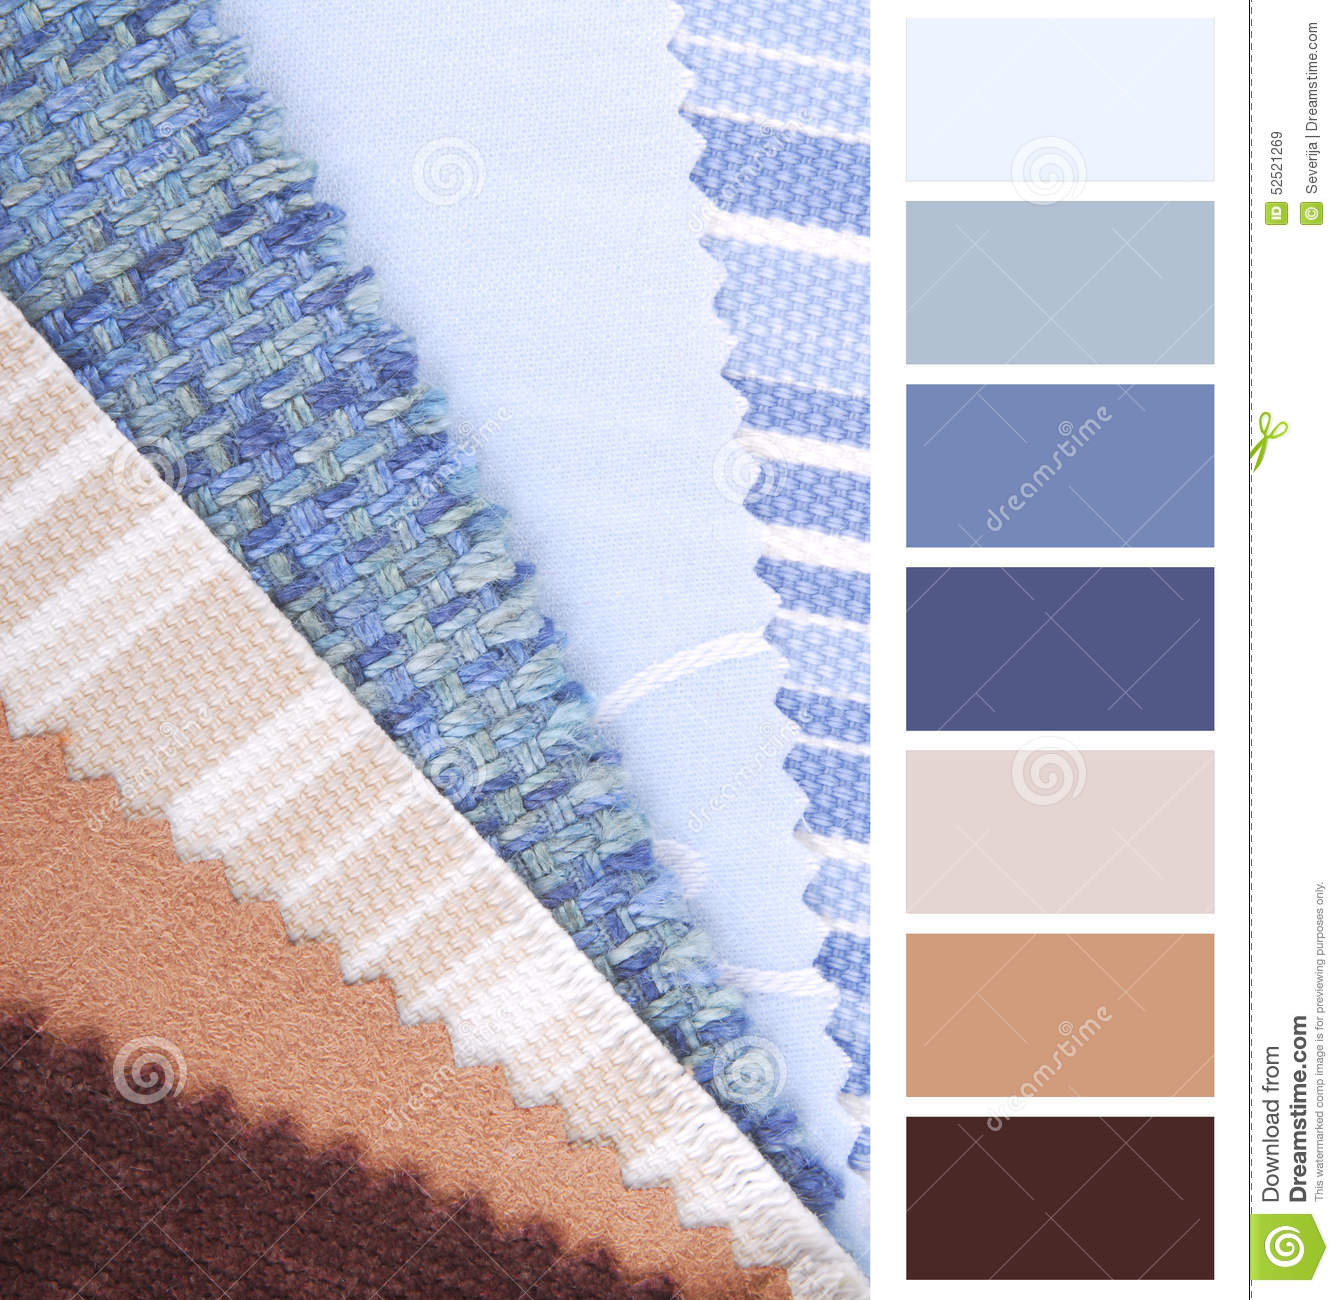 Fabric Color Chart Stock Image Image Of Fashion House 52521269